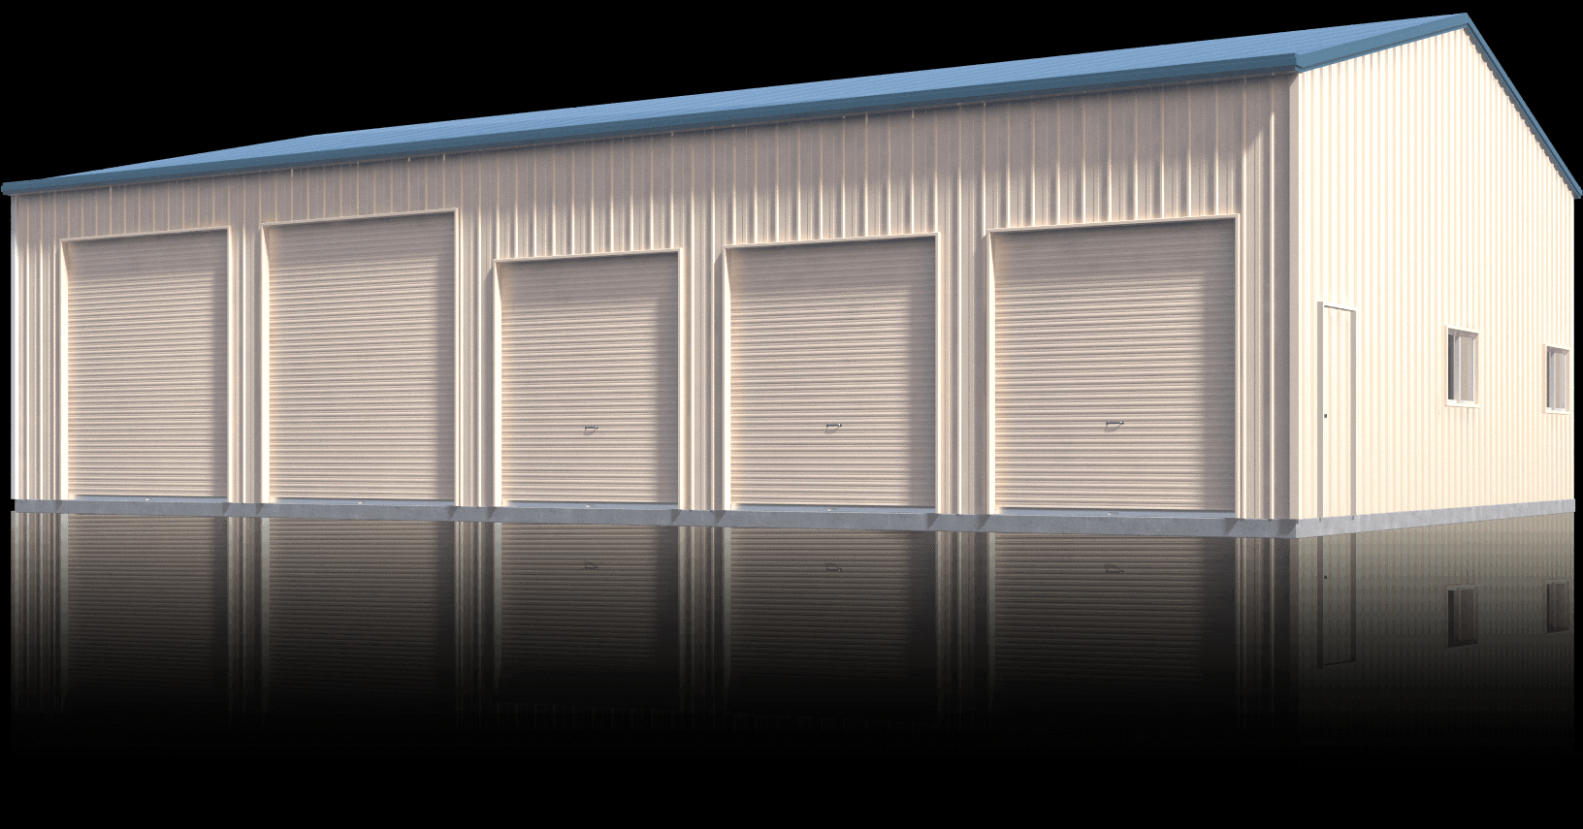 Sheds And Garages Guaranteed By Titan Garages & Sheds Carports Garages Toowoomba